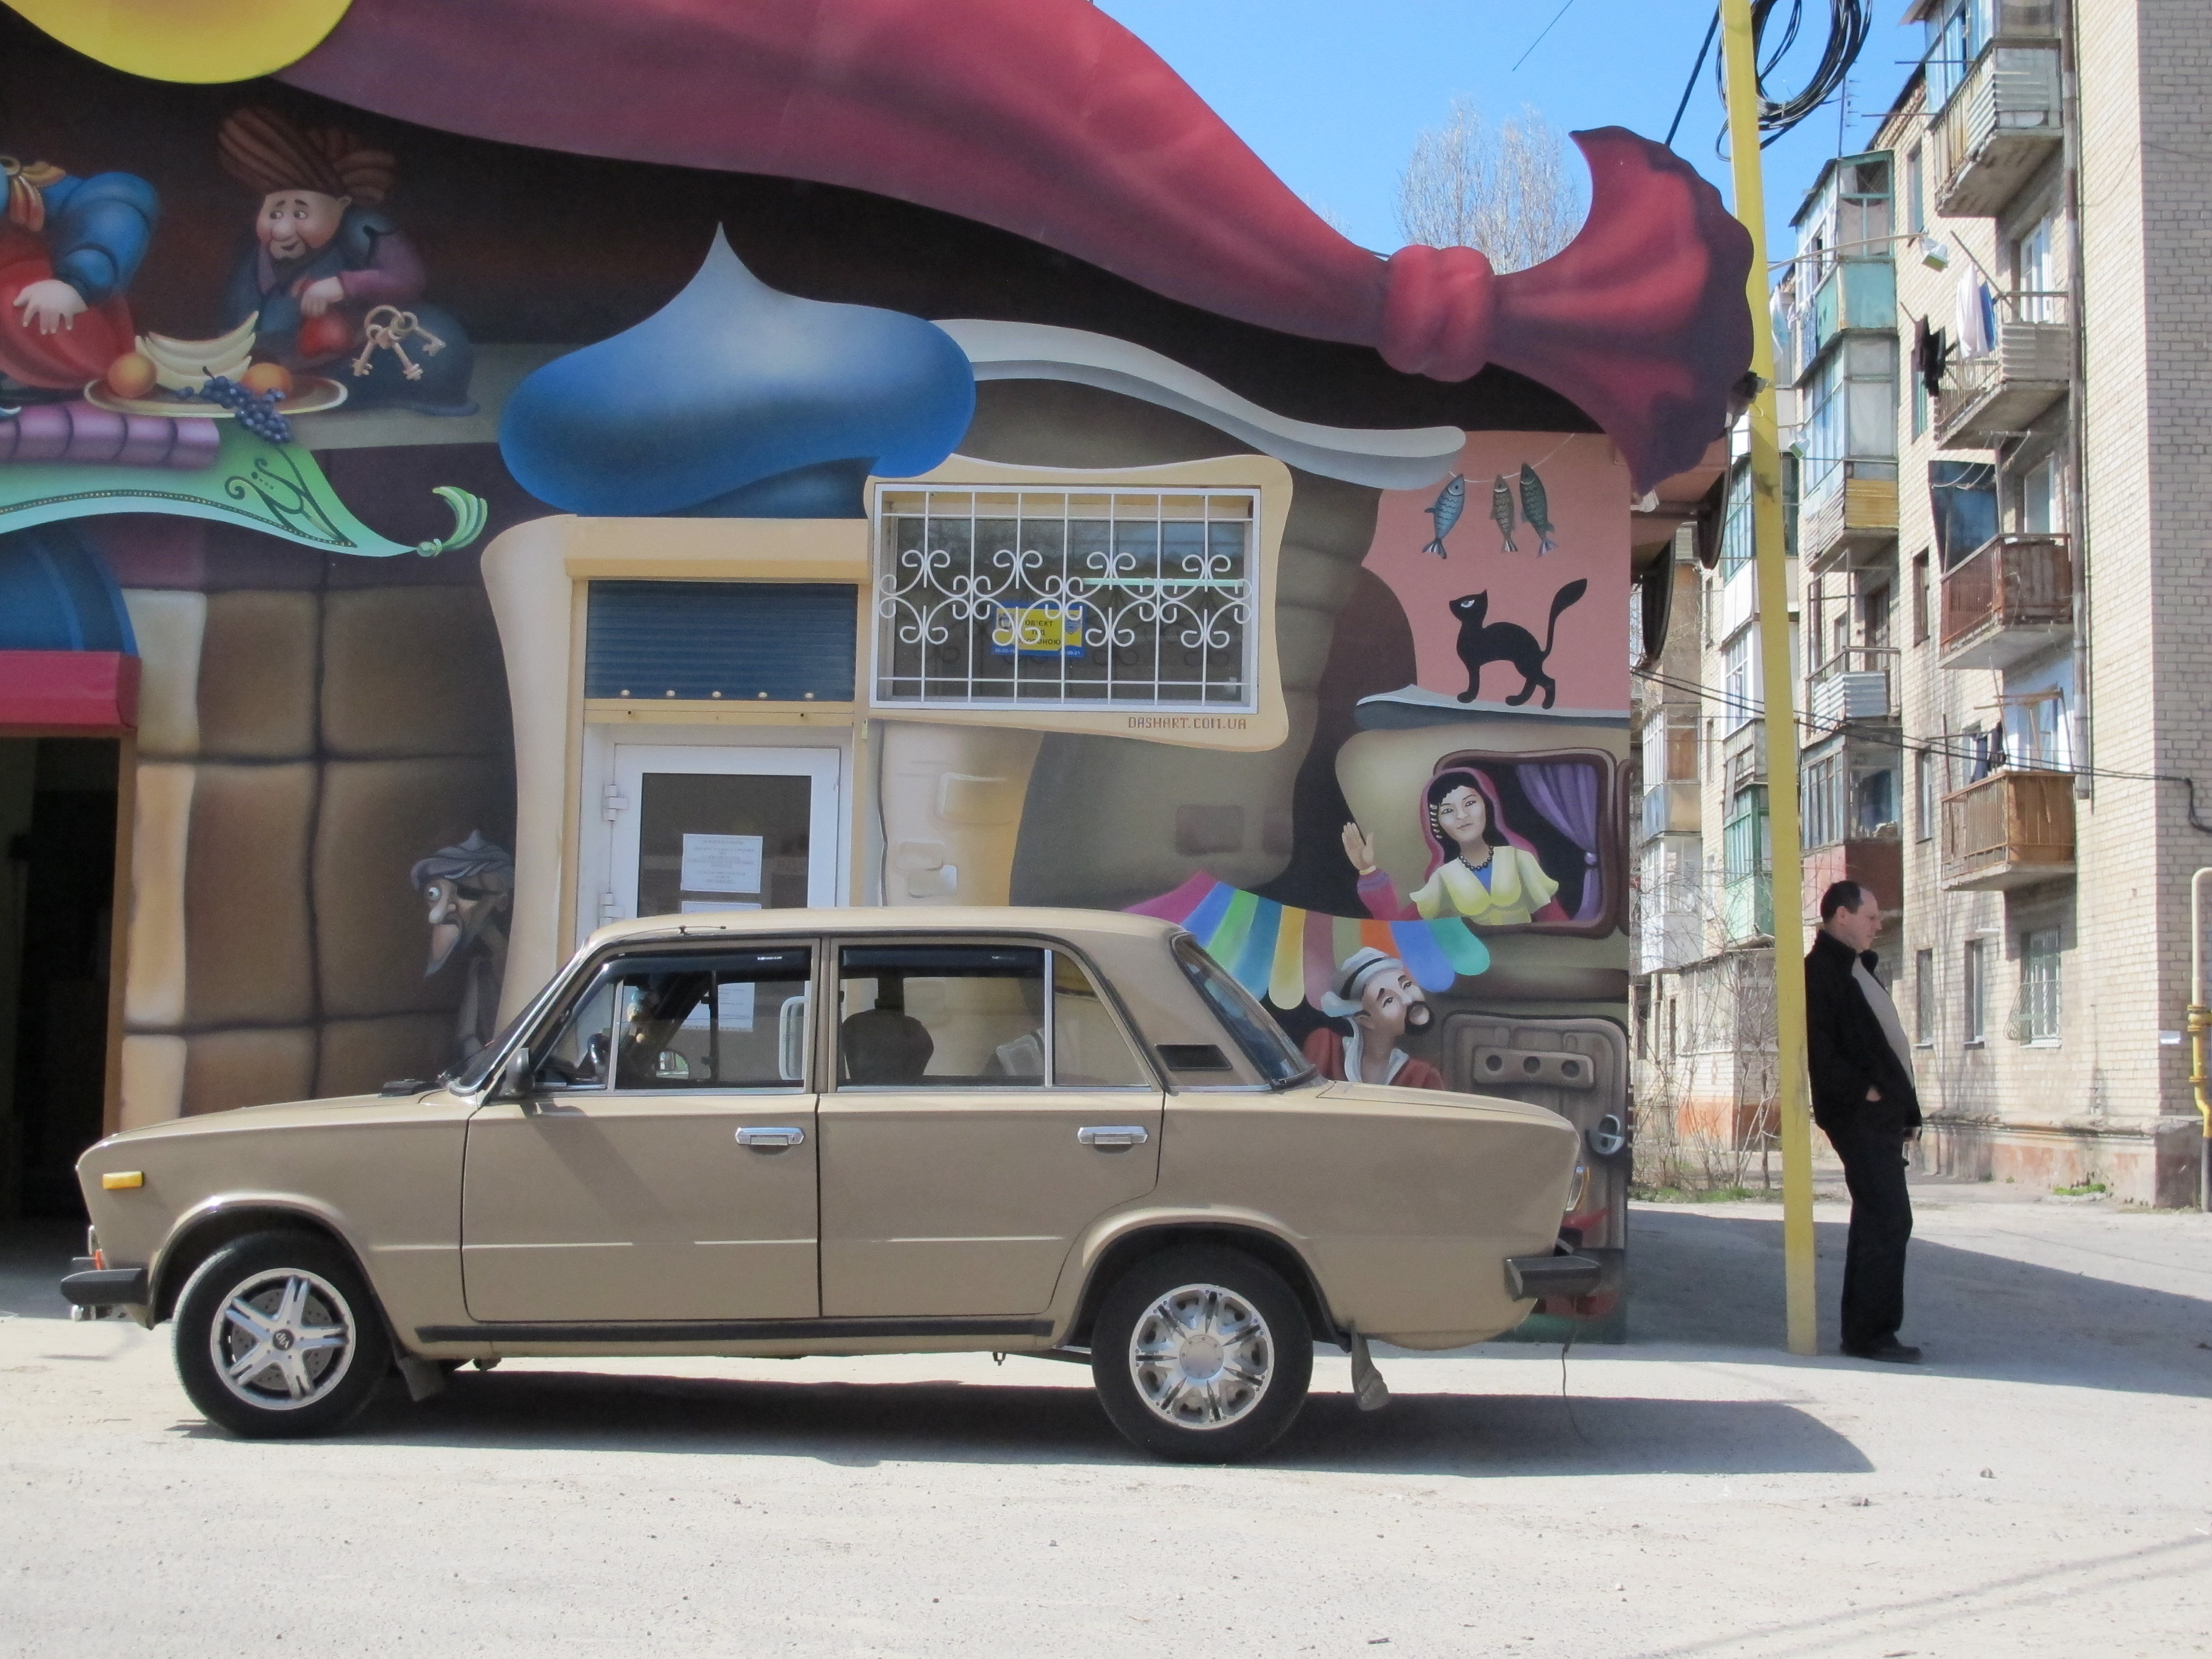 Gallery. A day out in Kherson